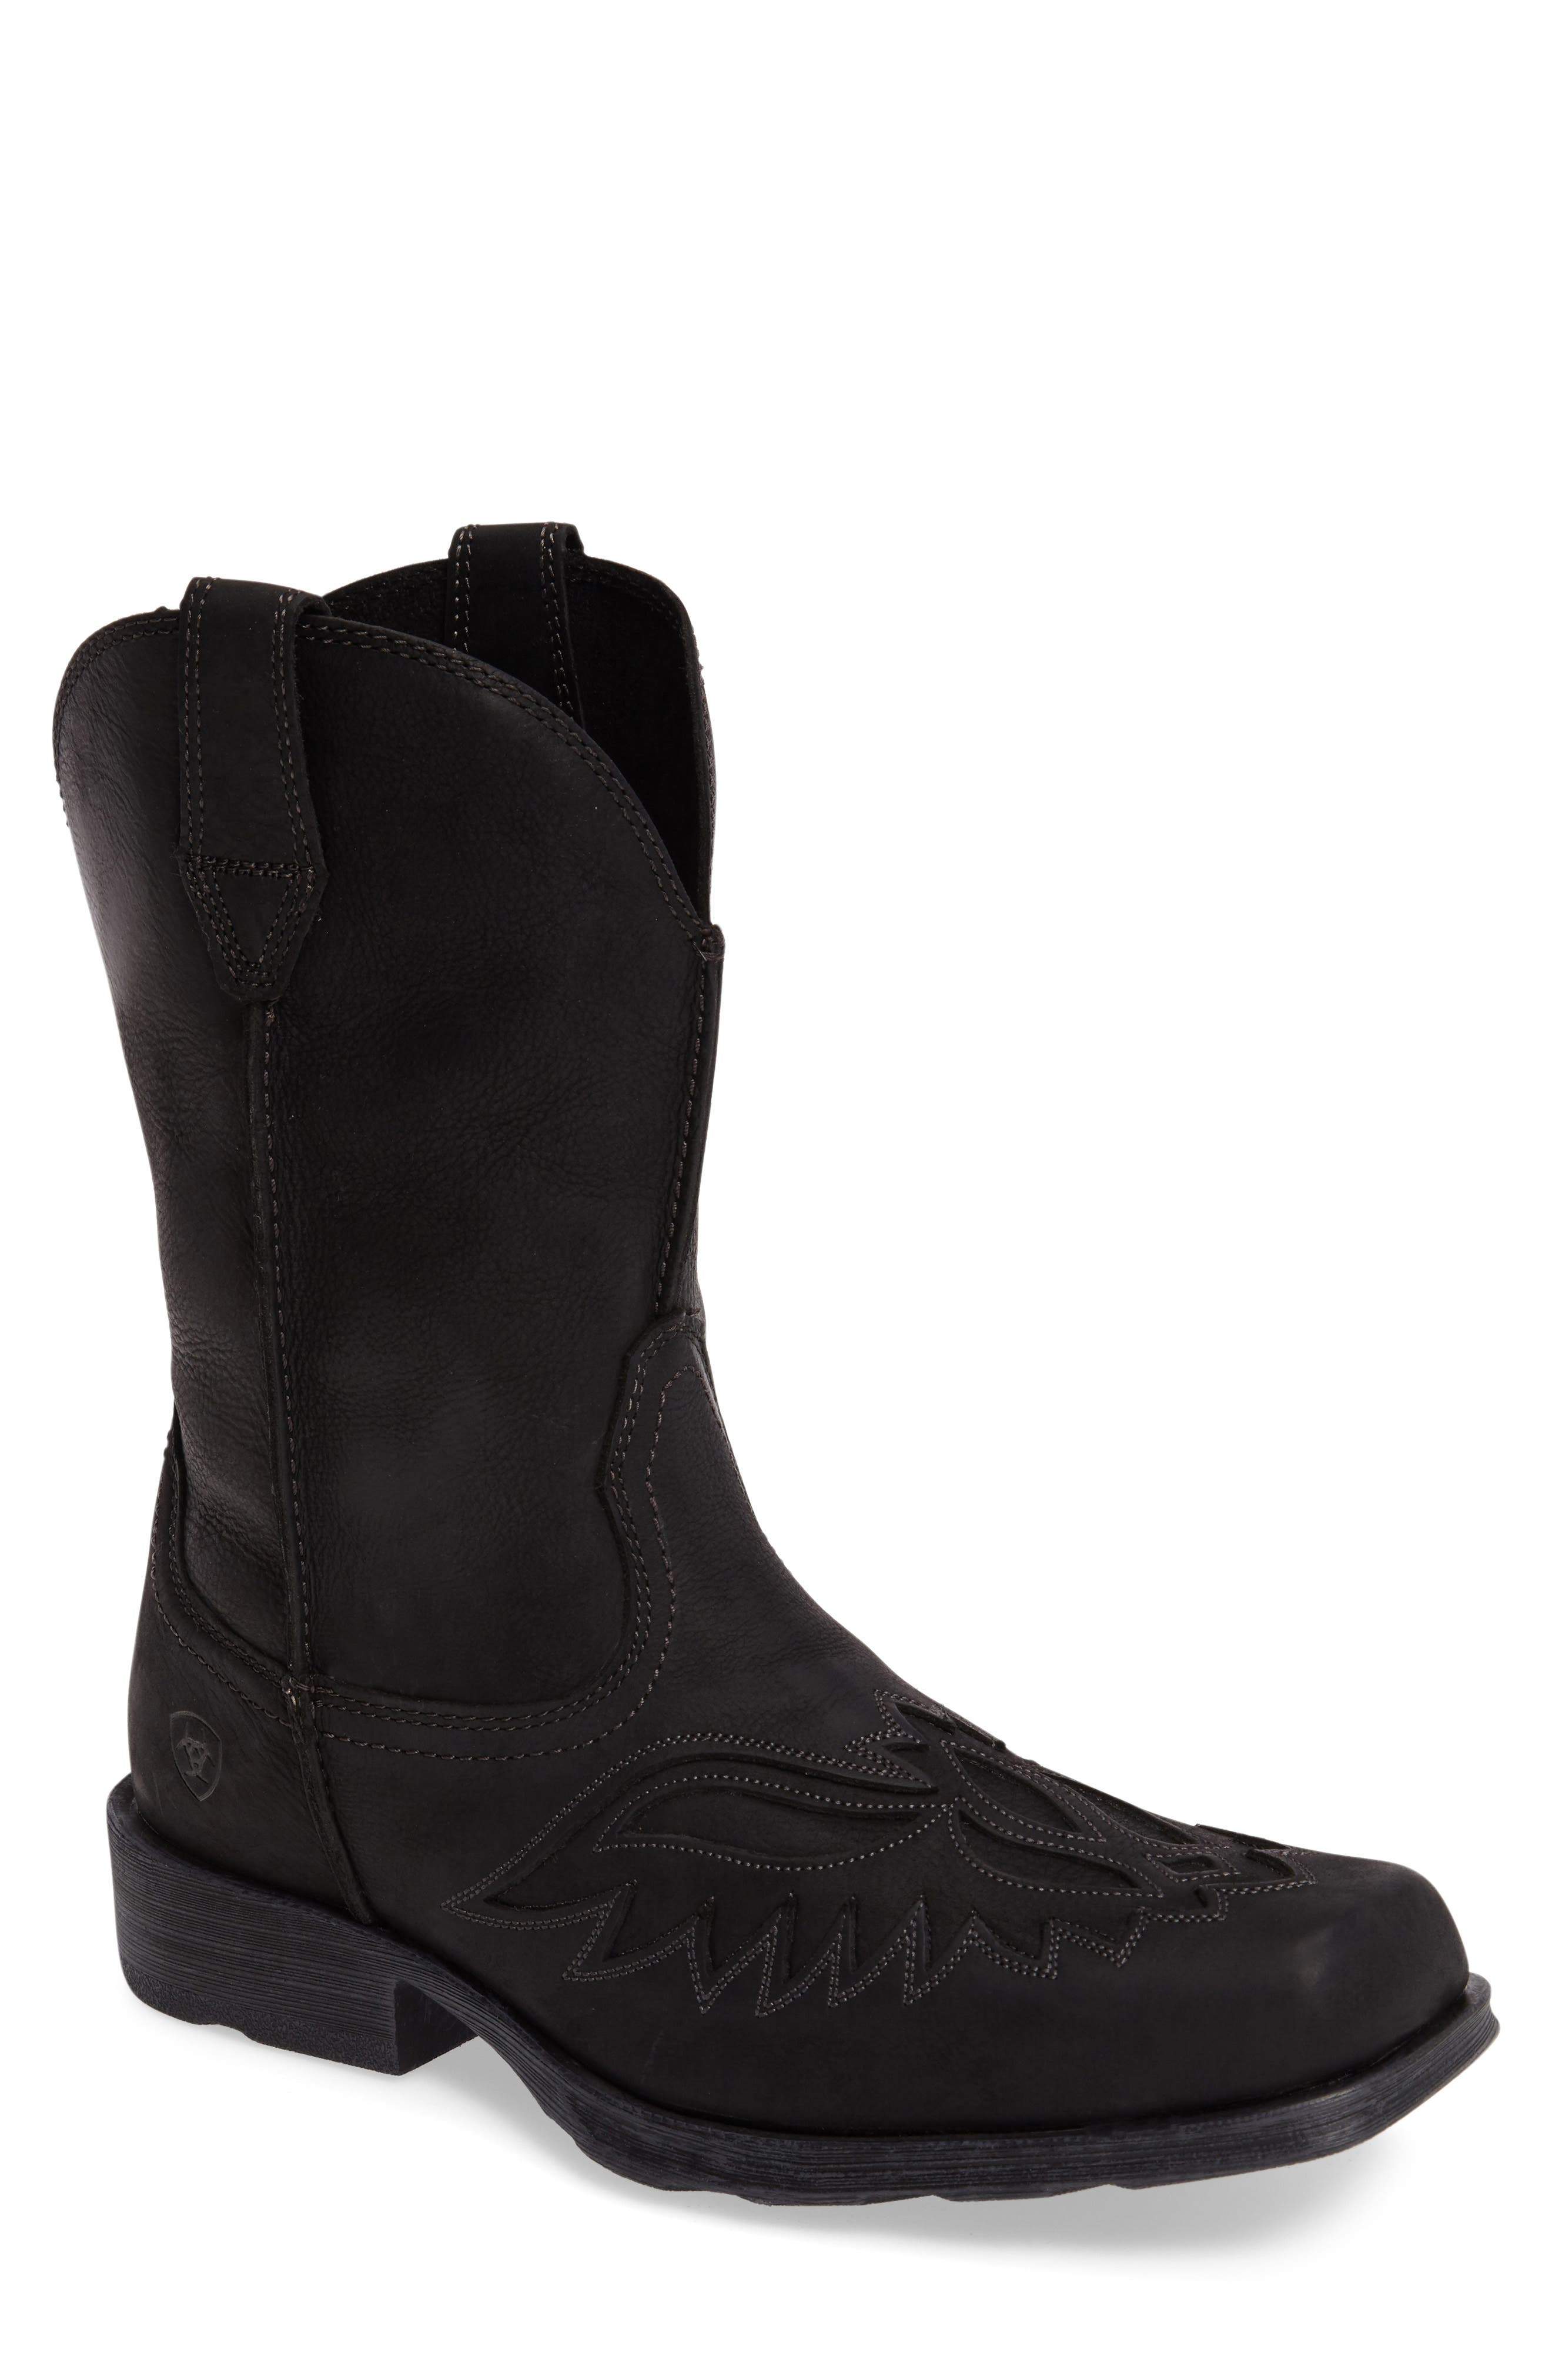 Ariat Rambler Renegade Cowboy Boot, Black